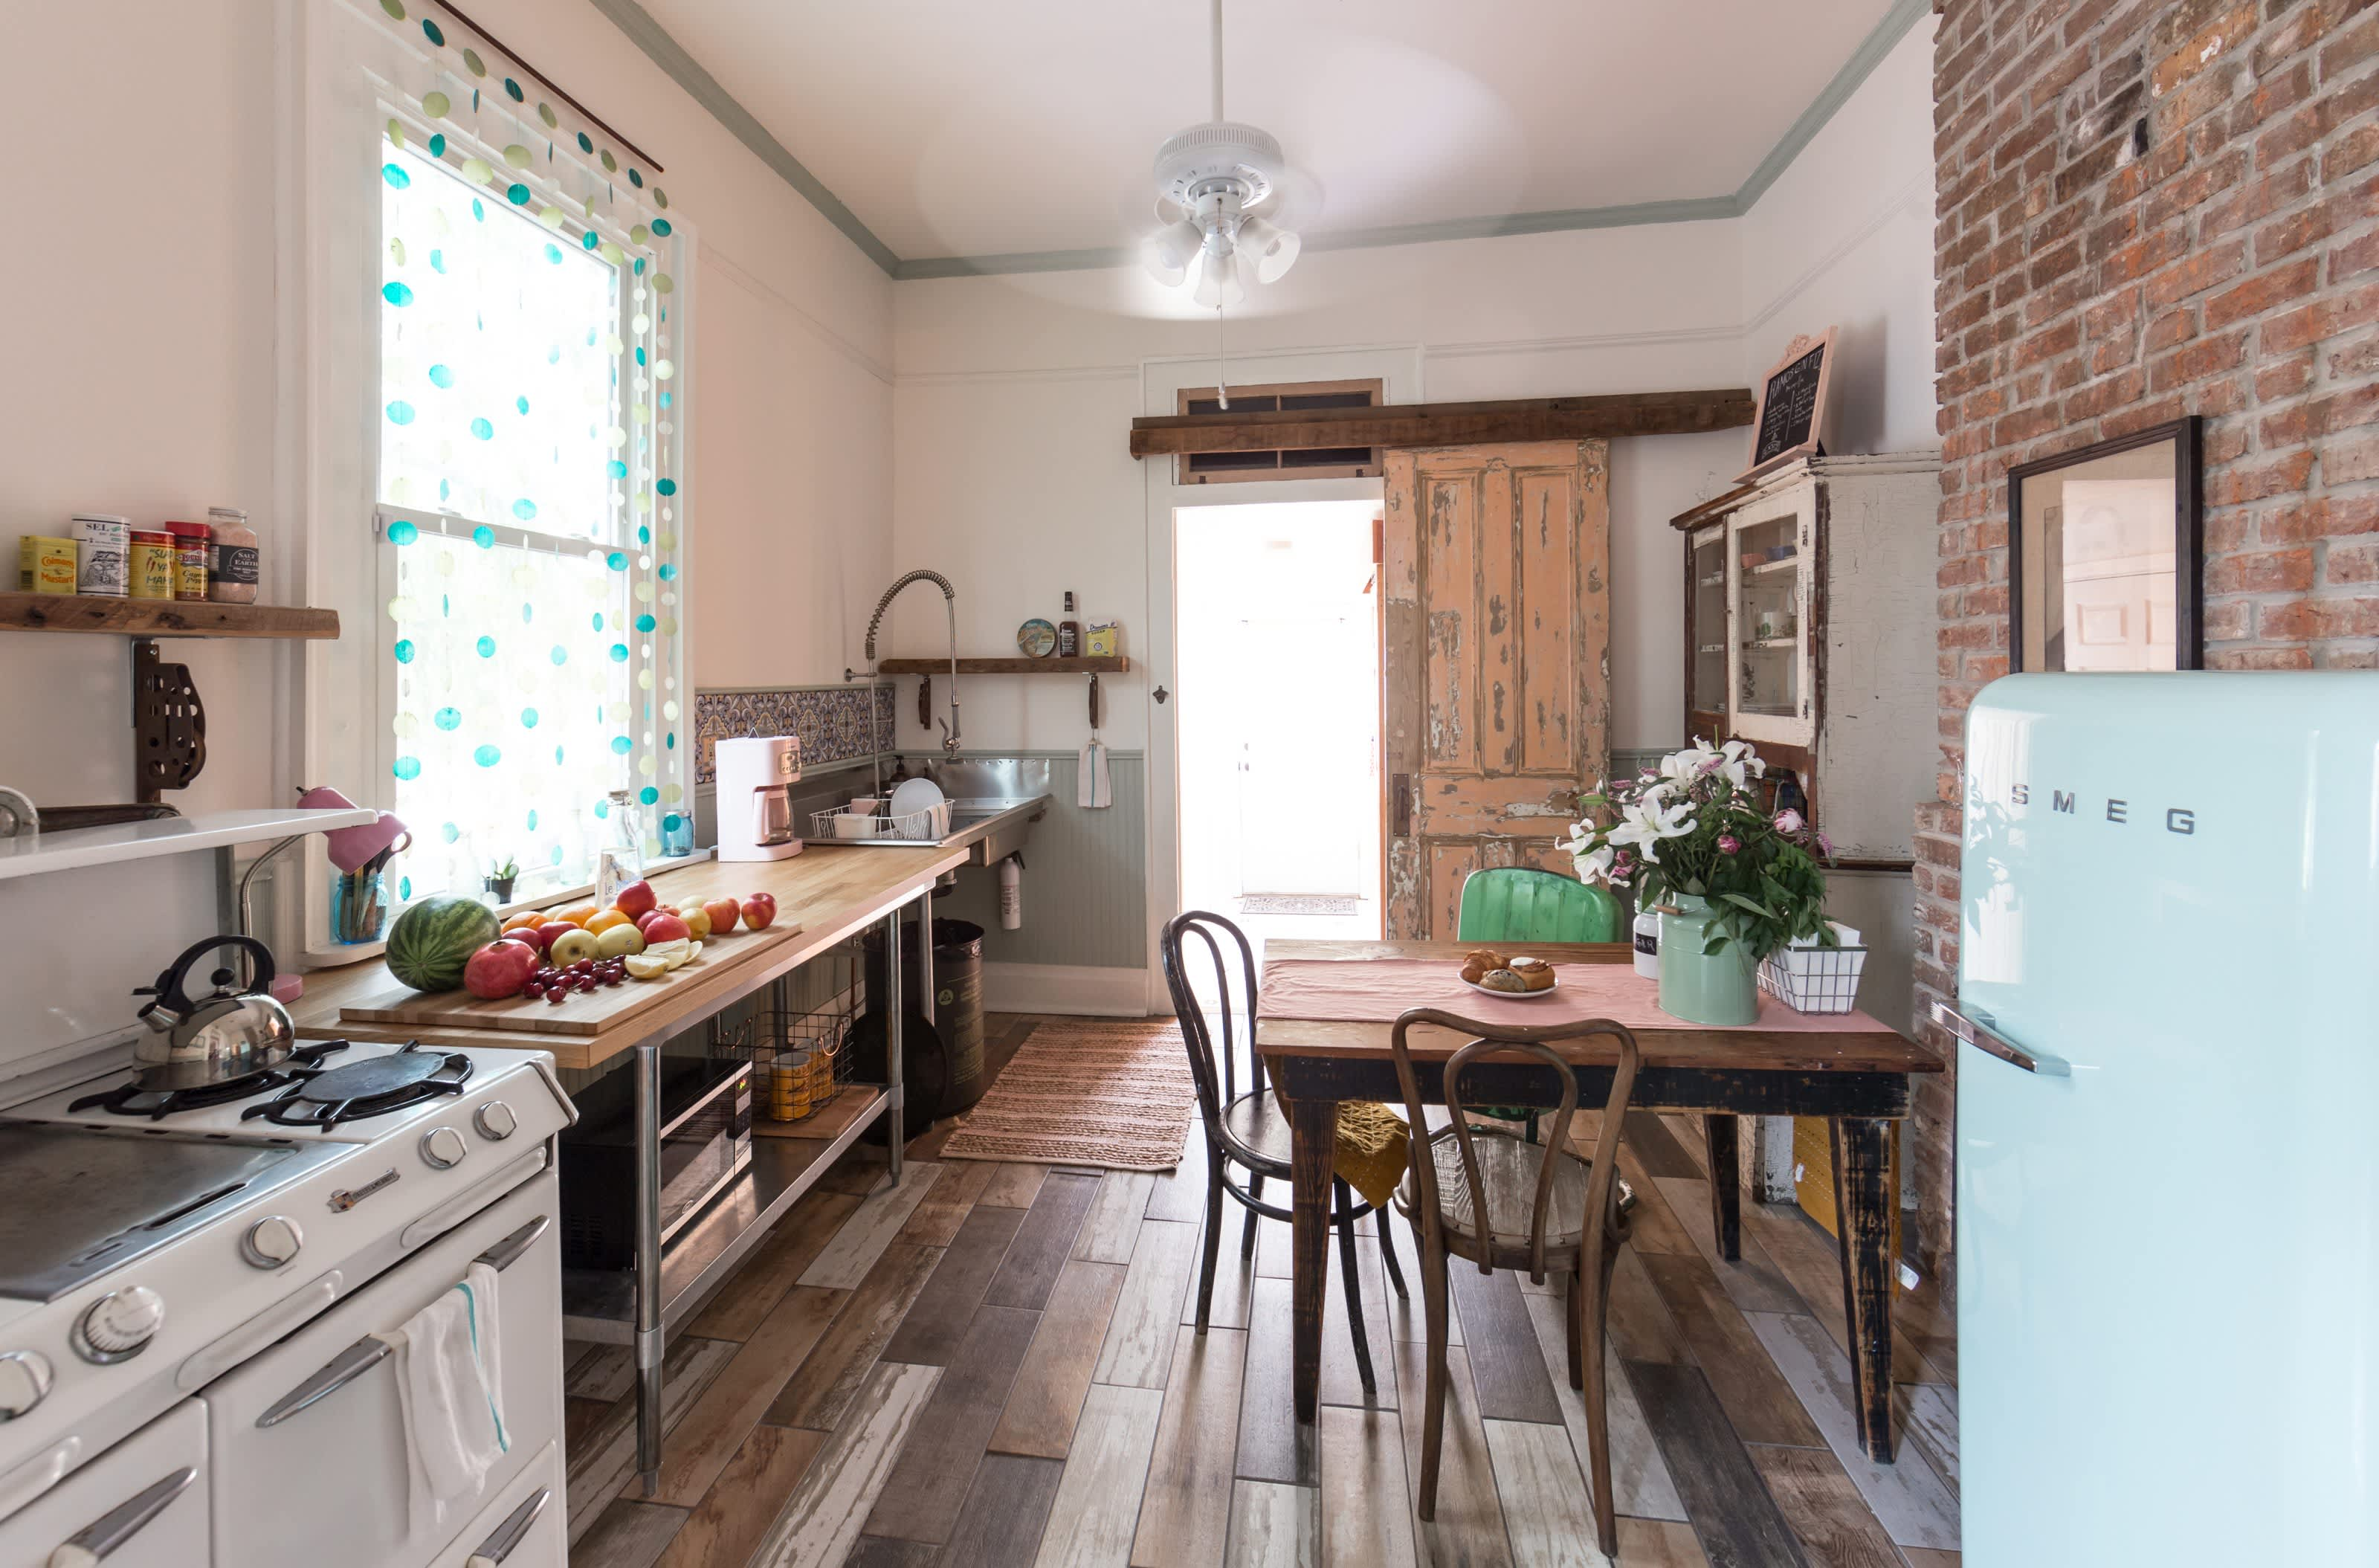 House Tour: A New Orleans Shotgun With Vintage Charm ... on cottage fireplace, a-frame house fireplace, tree house fireplace, victorian house fireplace,